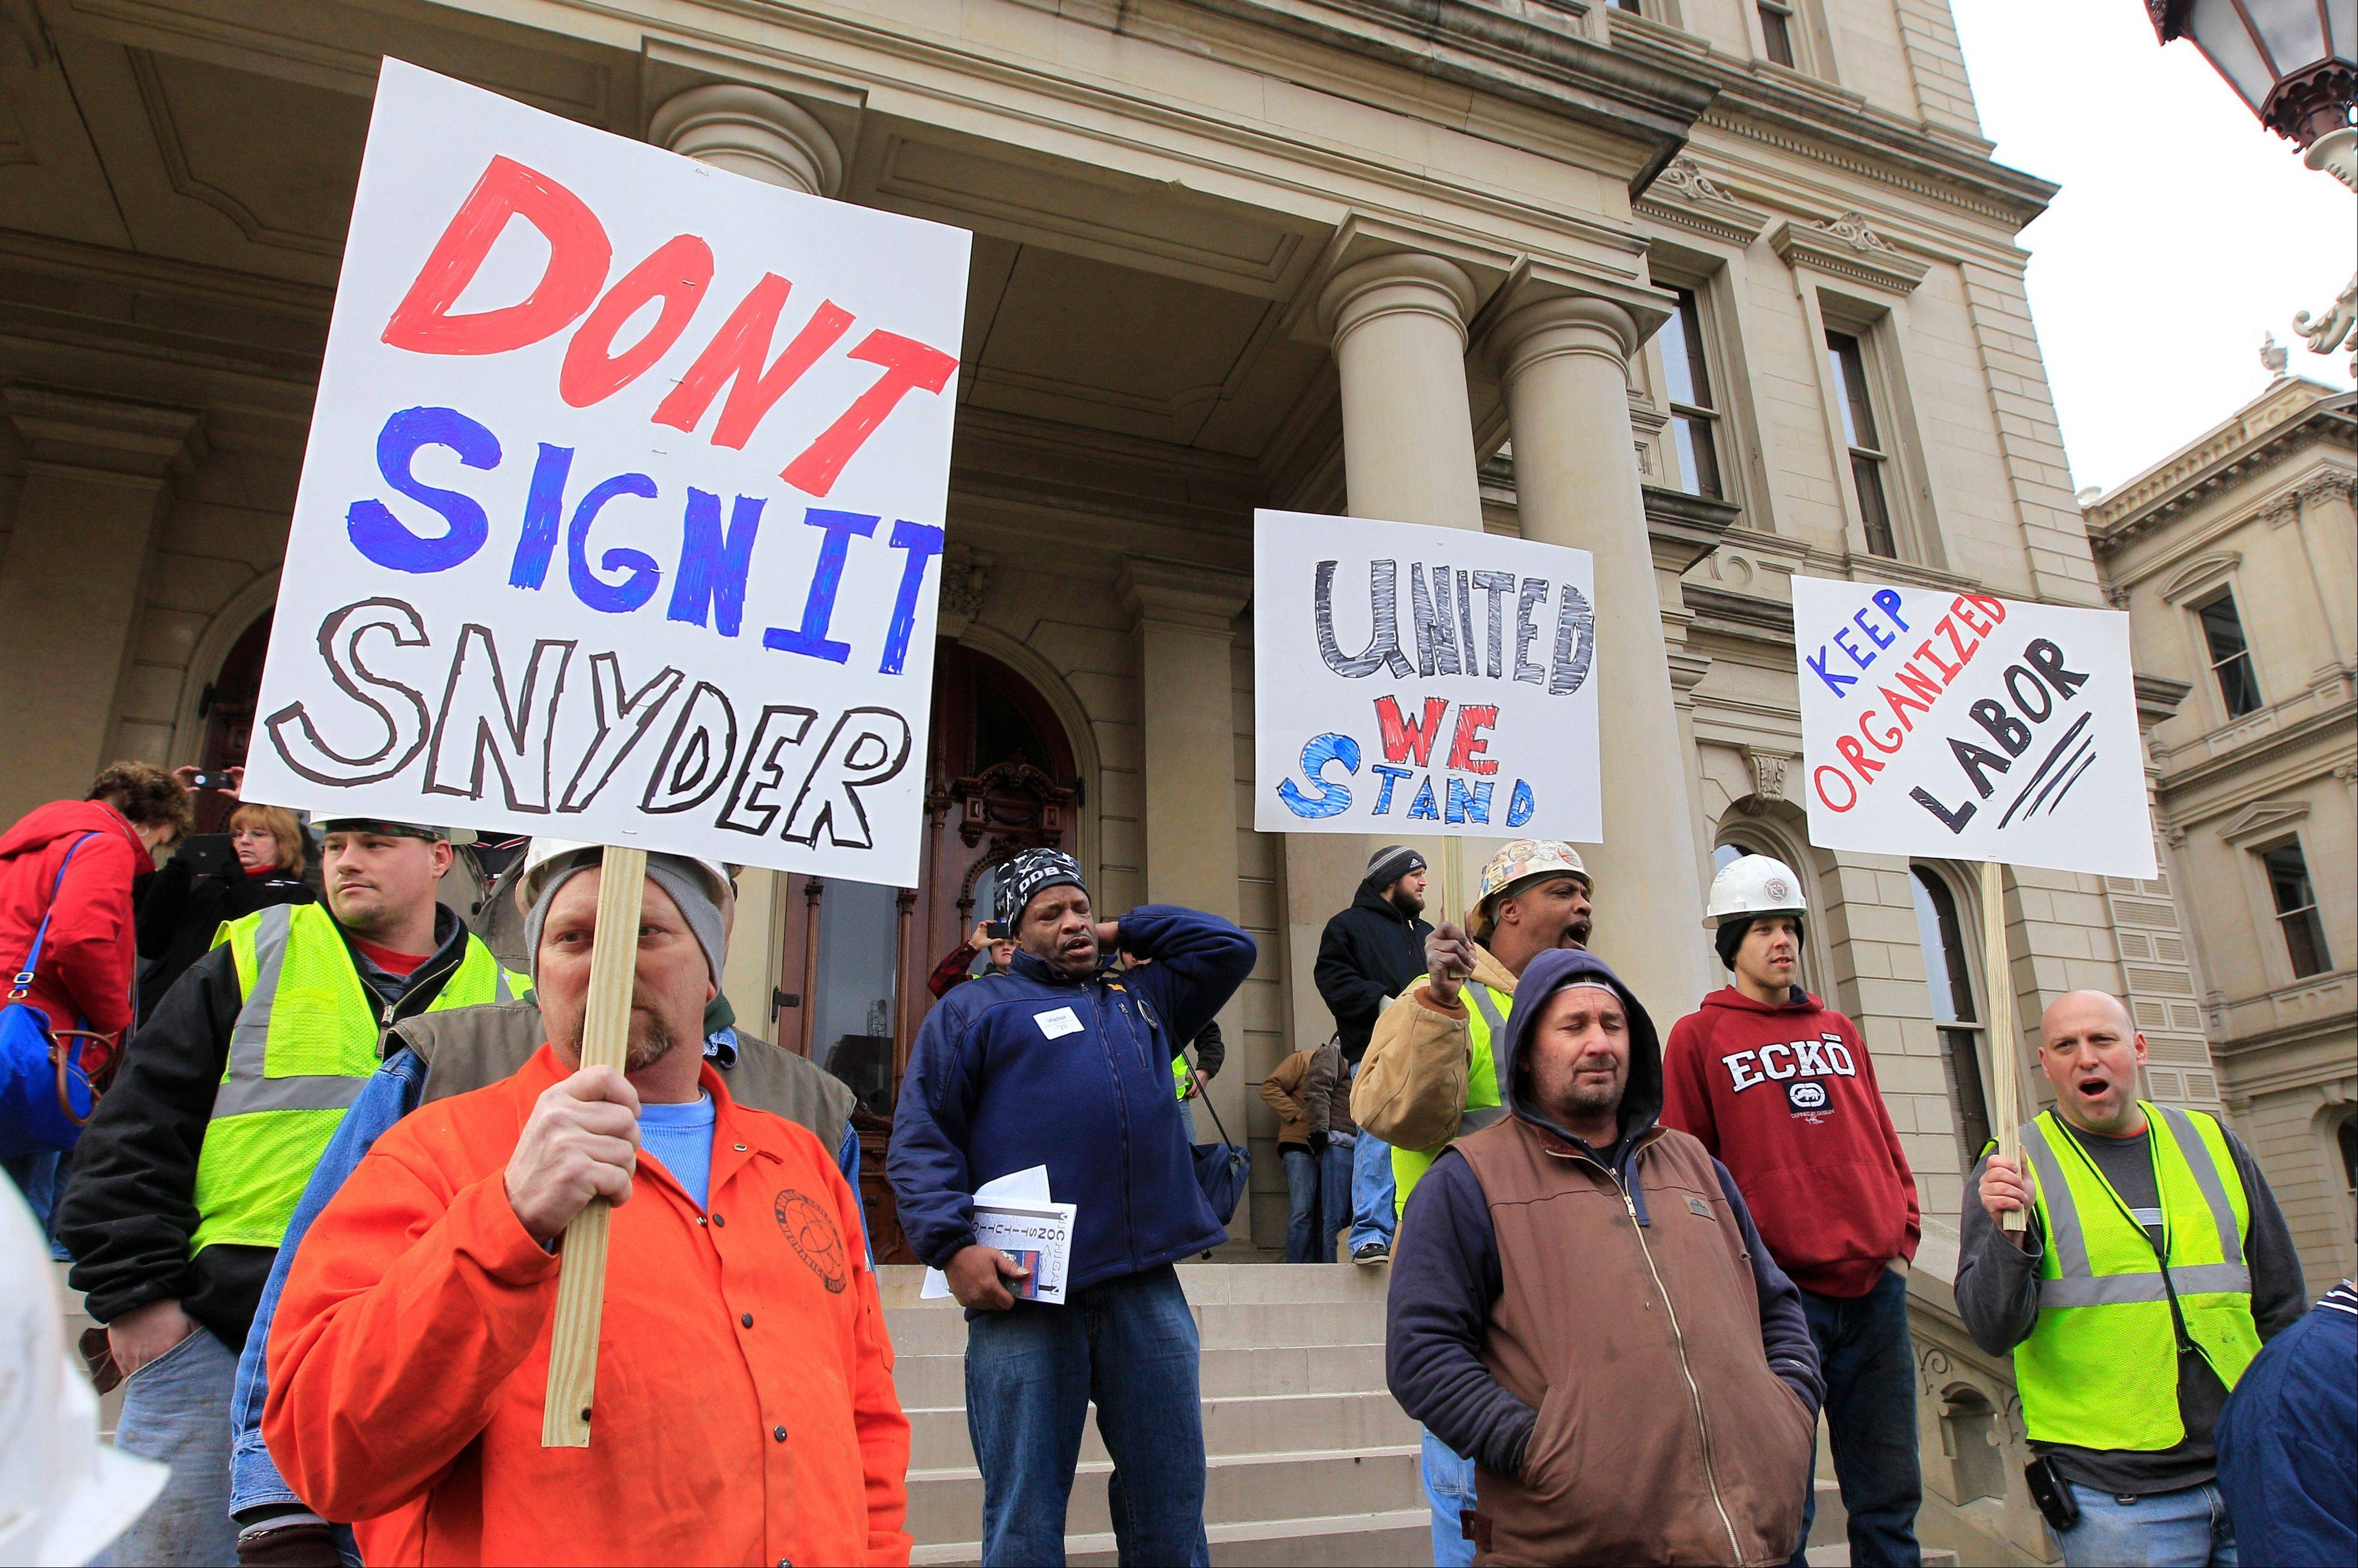 Union workers hold up a signs during a rally outside the Capitol in Lansing, Mich., Thursday, Dec. 6, 2012 as Senate Republicans introduced right-to-work legislation in the waning days of the legislative session.